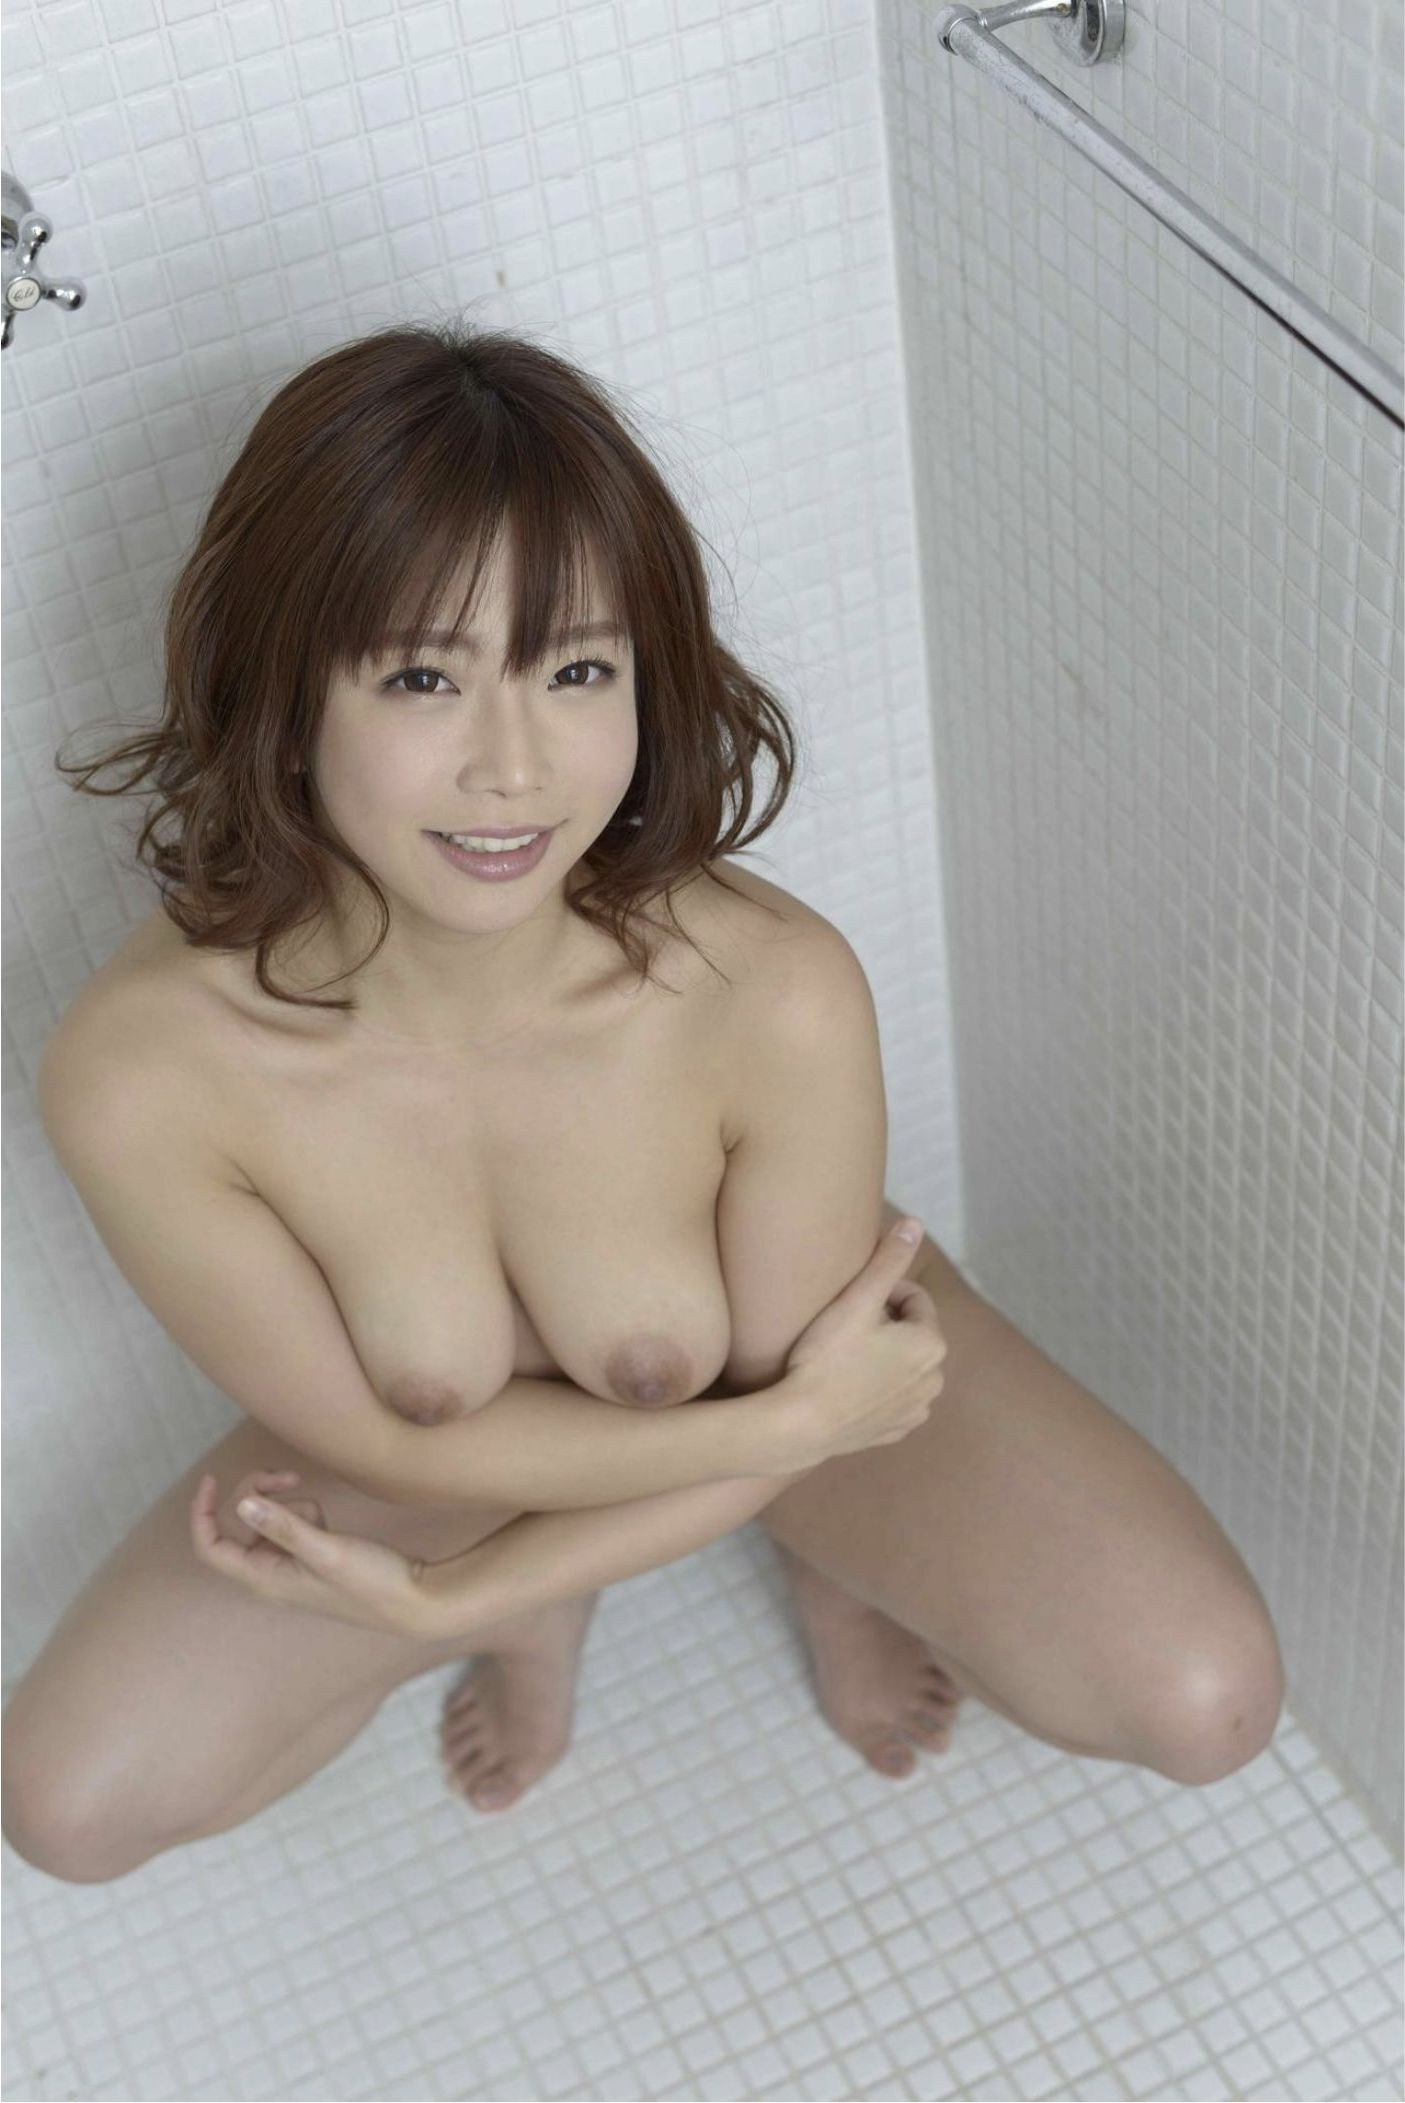 SOFT ON DEMAND GRAVURE COLLECTION 紗倉まな02 photo 135